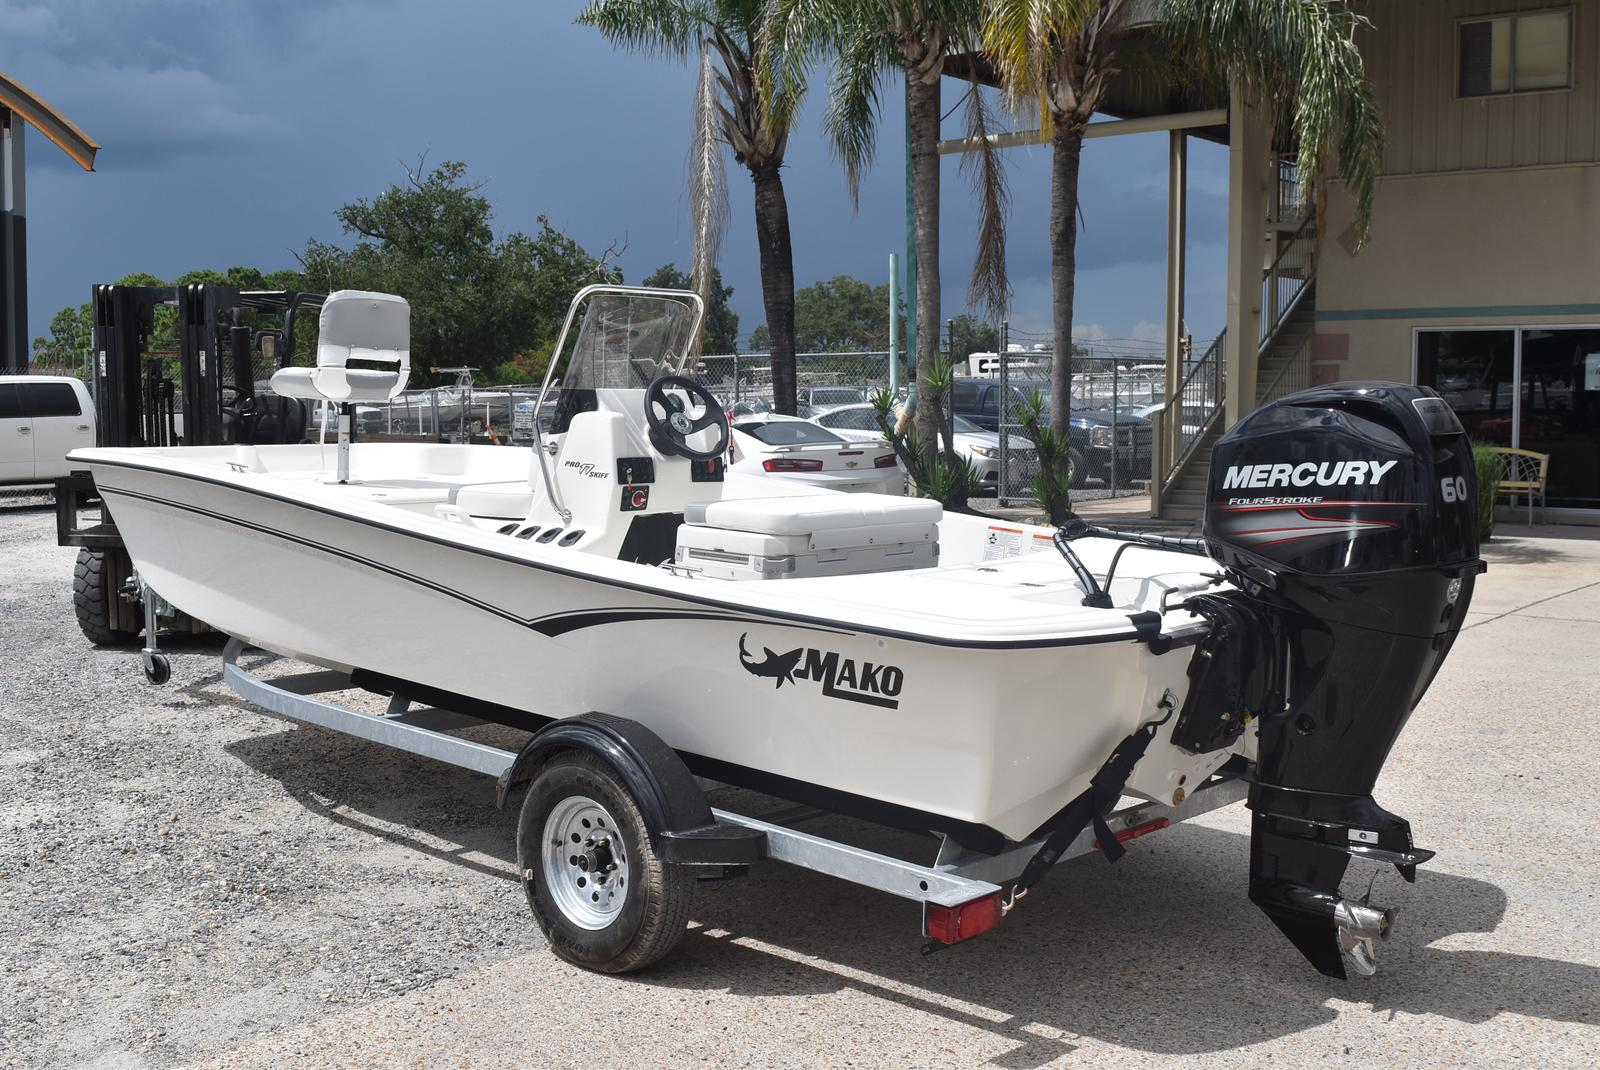 2020 Mako boat for sale, model of the boat is Pro Skiff 17, 75 ELPT & Image # 224 of 702